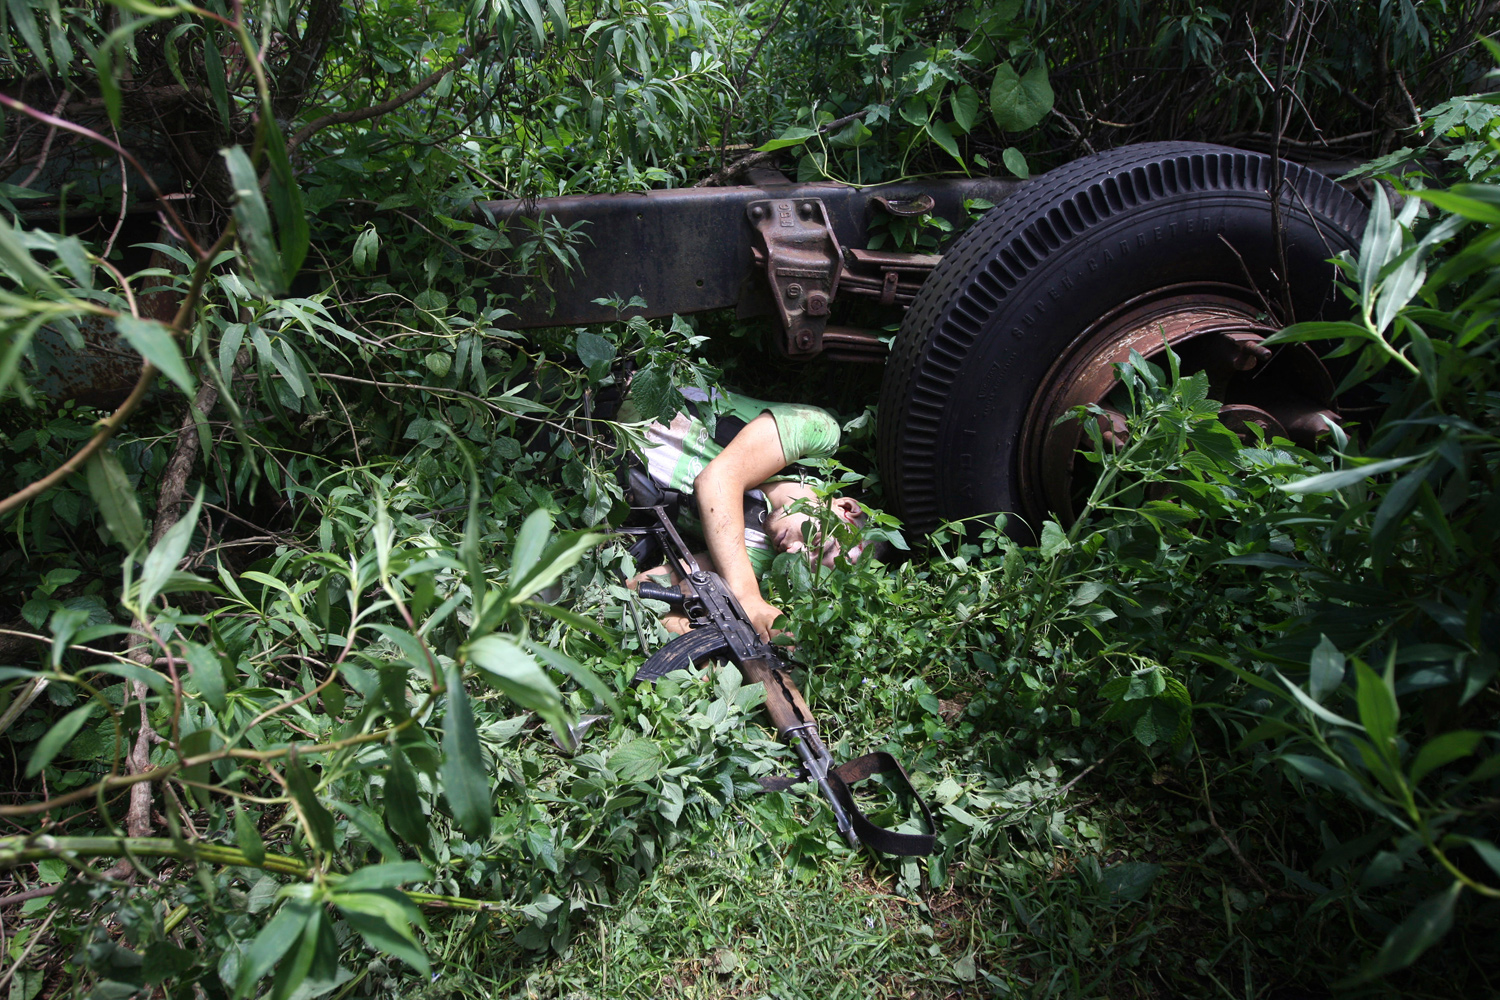 August 24, 2011. The body of a gunman lies in the woods after a shootout with soldiers in Zirahuen near Morelia, Mexico.